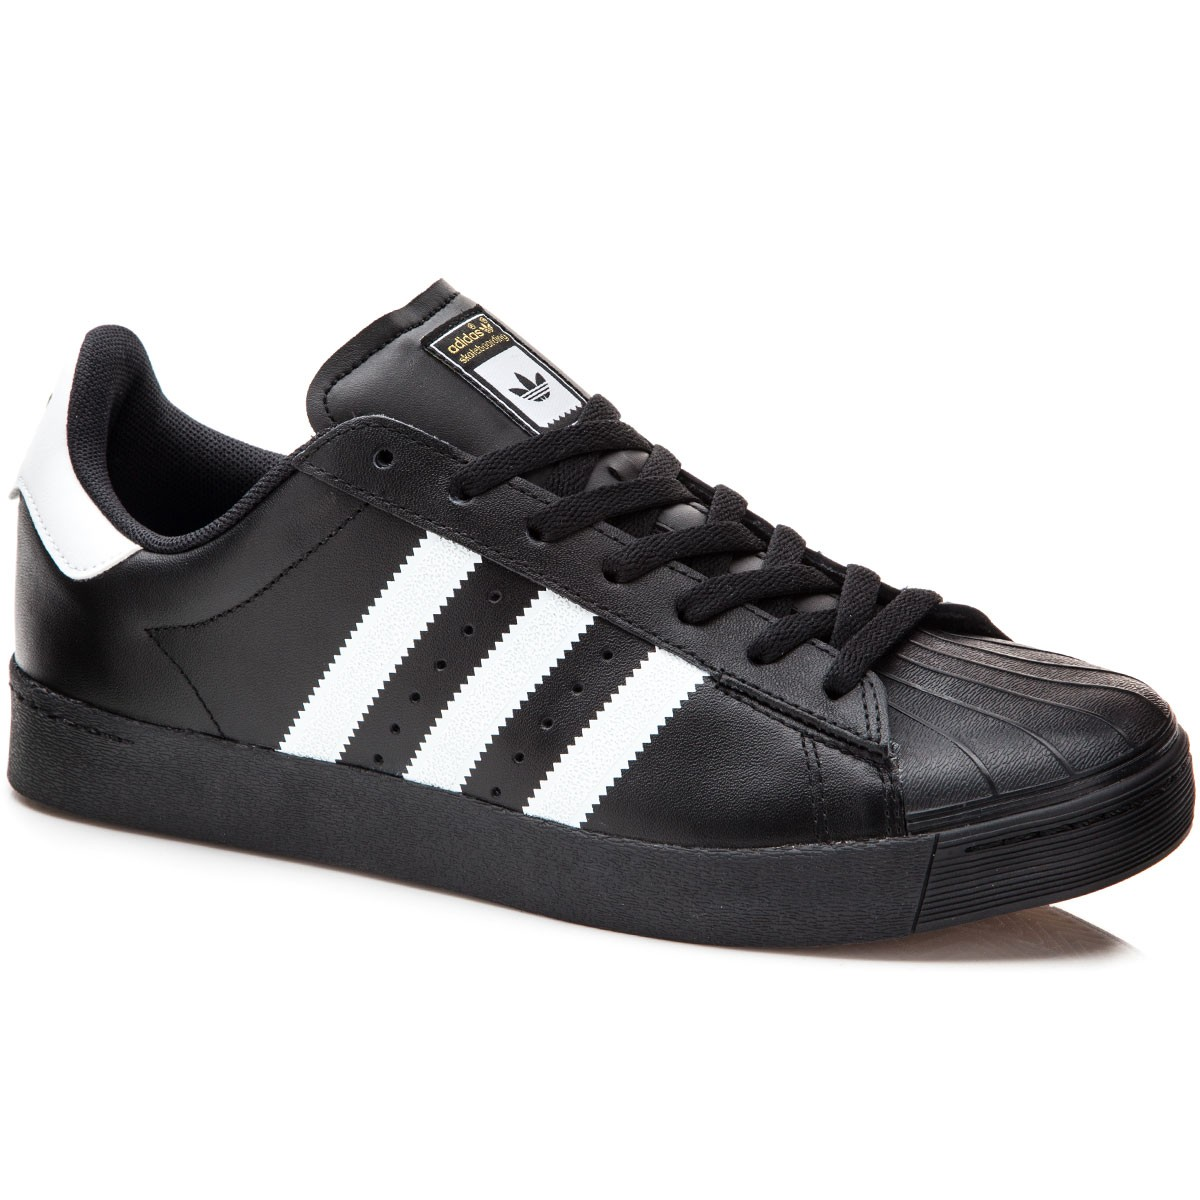 Adidas Superstar Vulc Adv Skate Shoes